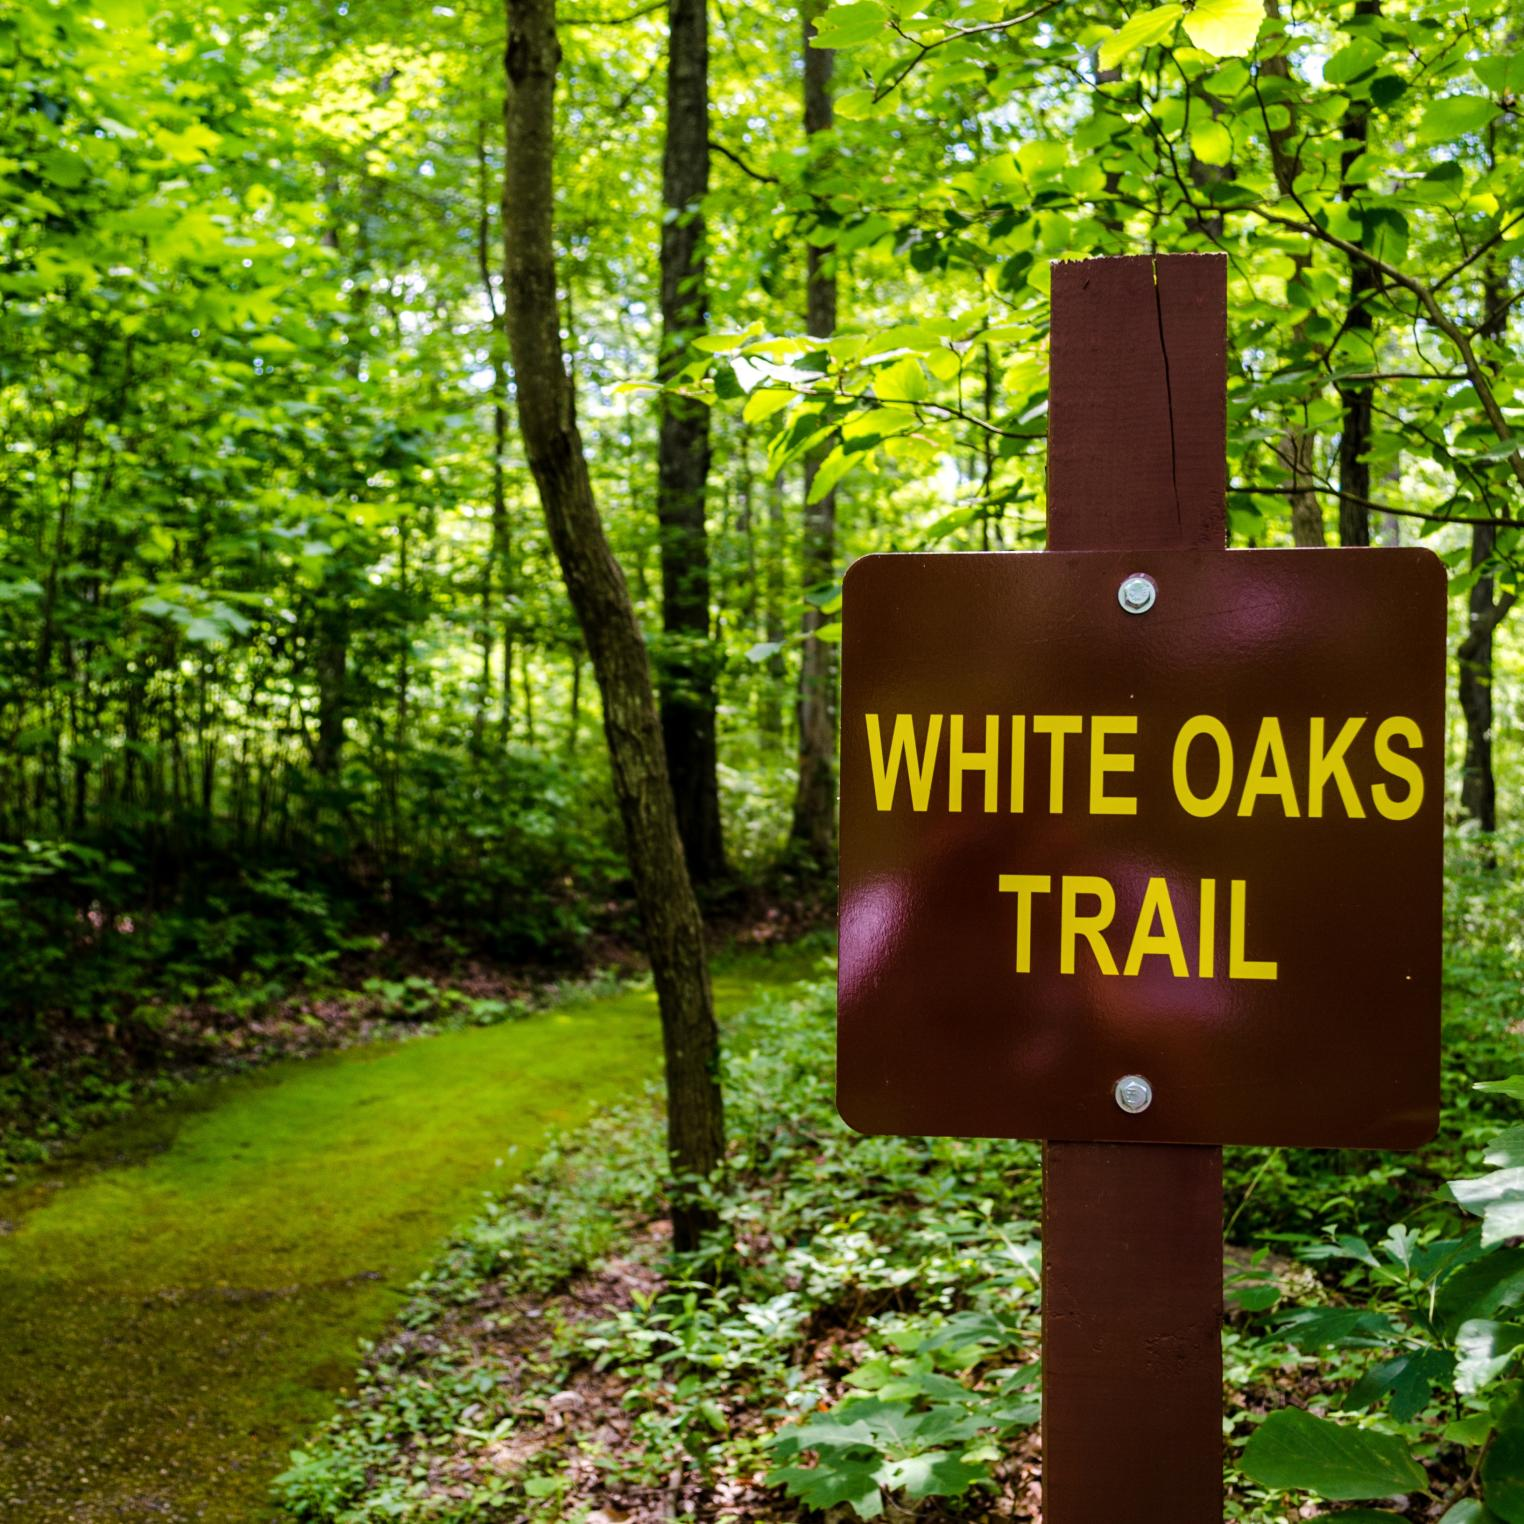 White Oaks Trail @ Kings Gap